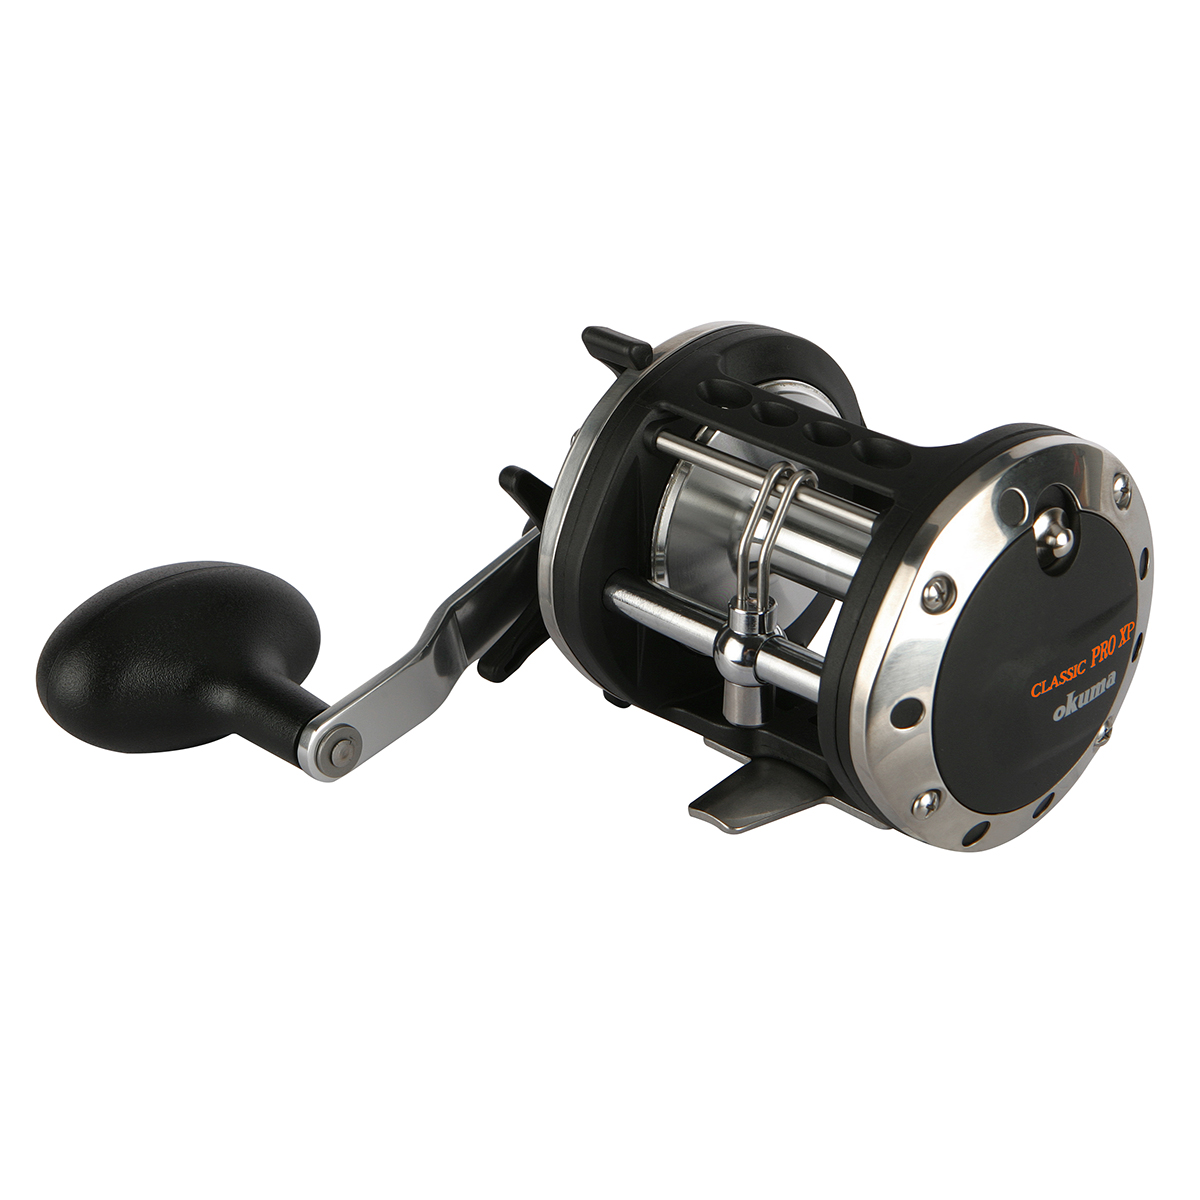 Fishing rods and reels classic pro star drag reel for Professional fishing gear